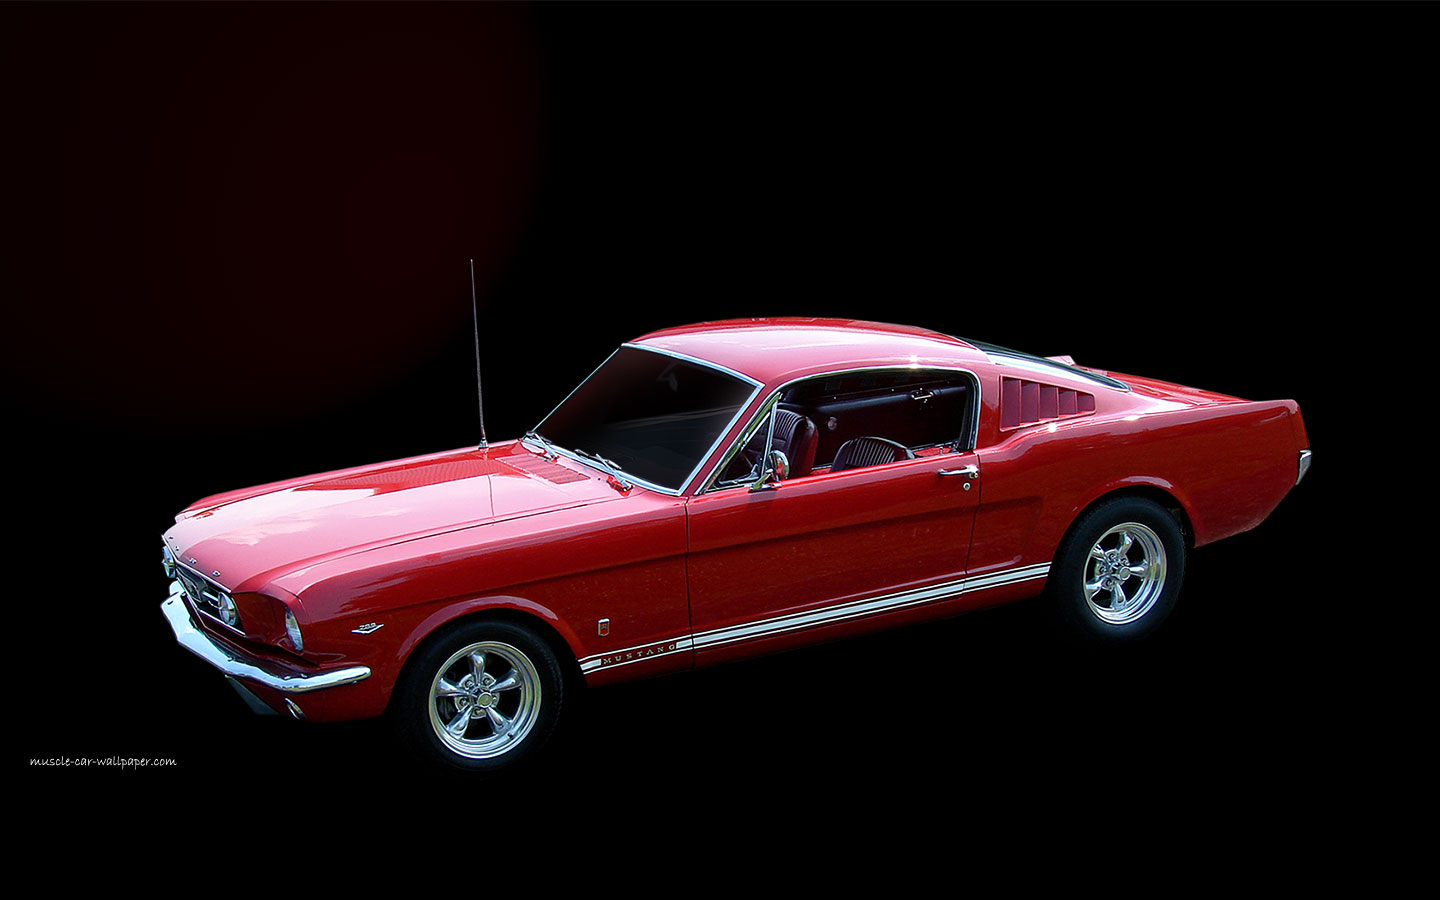 ford mustang gt fastback wallpaper left side view 1440 14 1966 mustang 1440x900